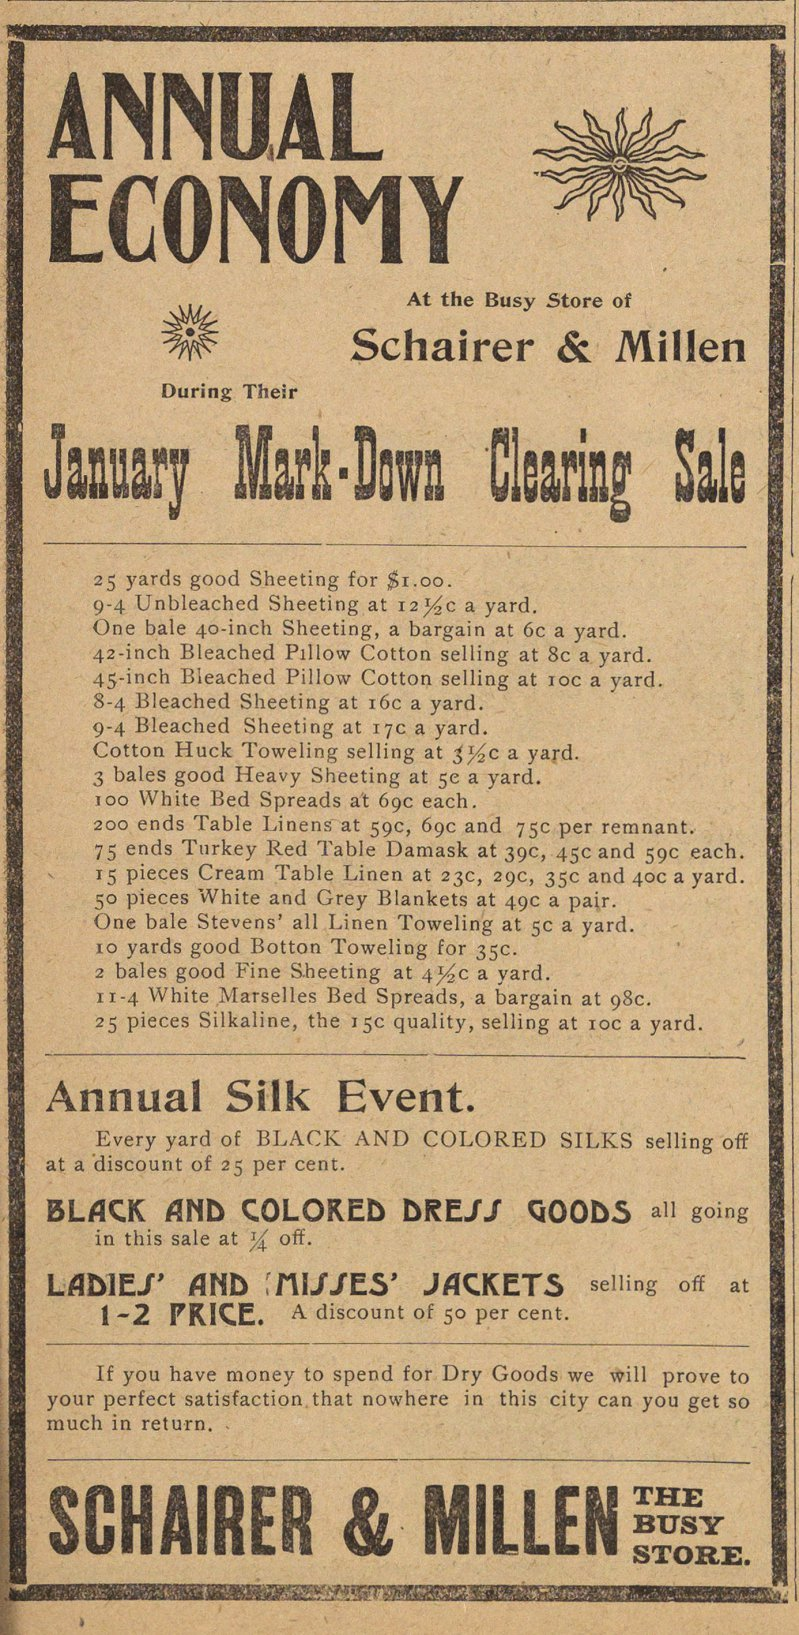 January Mark-down Clearing Sale image